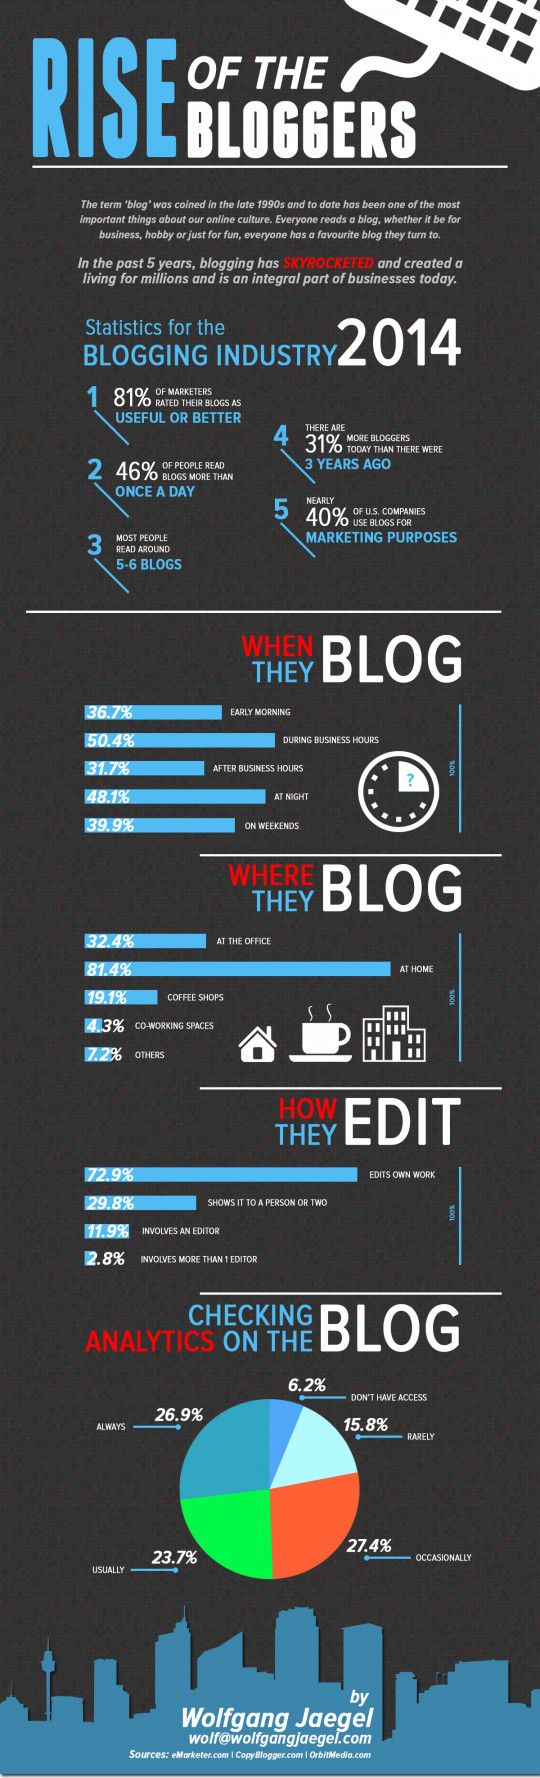 Rise of the Bloggers - Blog Statistics 2014